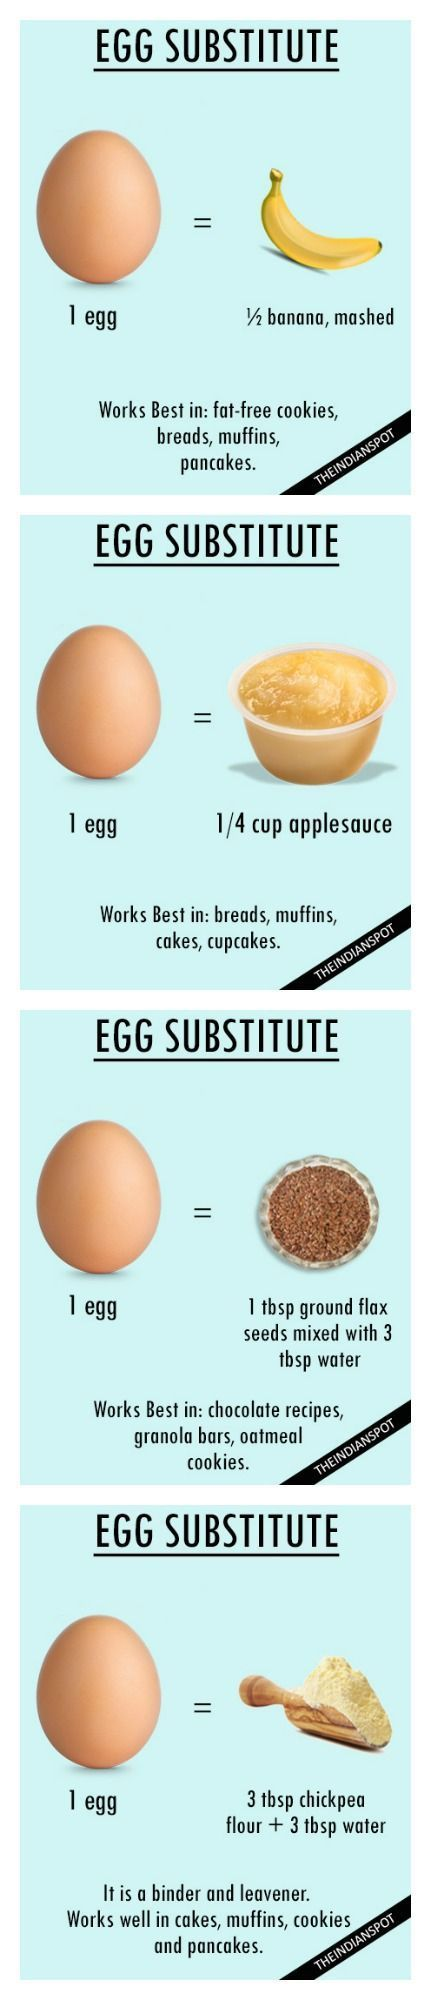 VEGAN BAKING WITHOUT EGGS – BEST SUBSTITUTES FOR EGGS IN BAKING